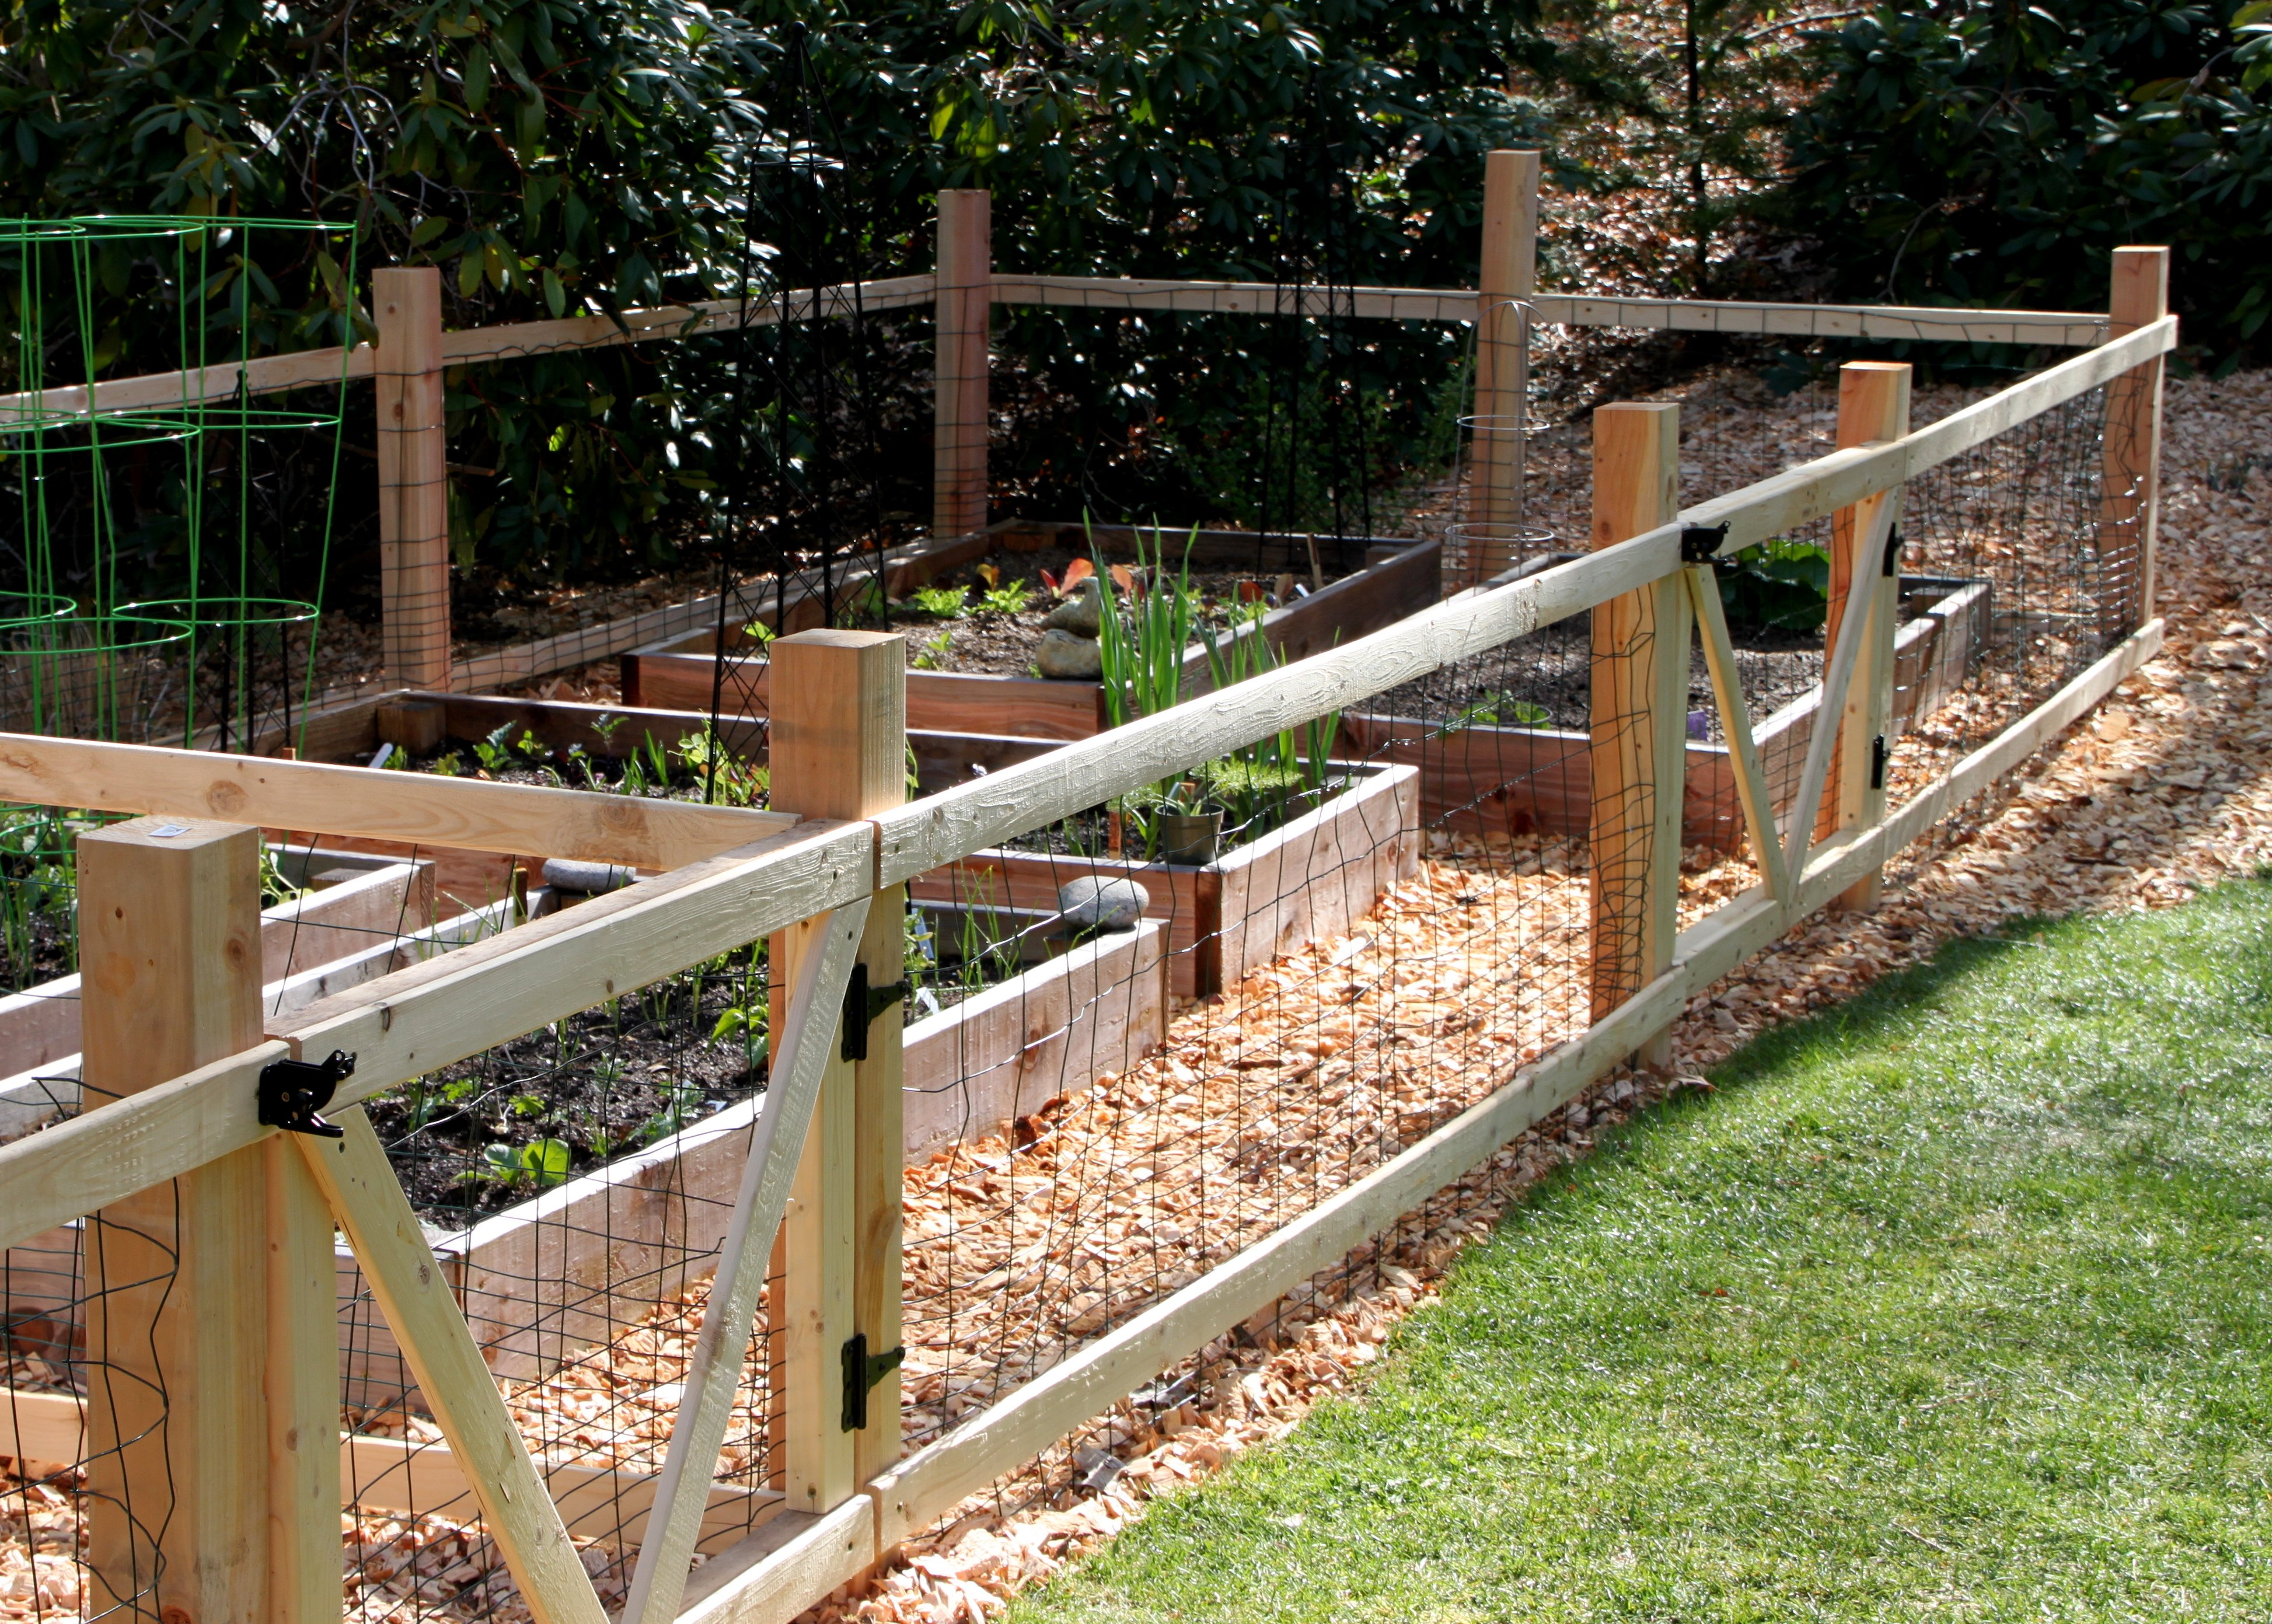 A simple garden fence tilly 39 s nest for Decorative vegetable garden fencing